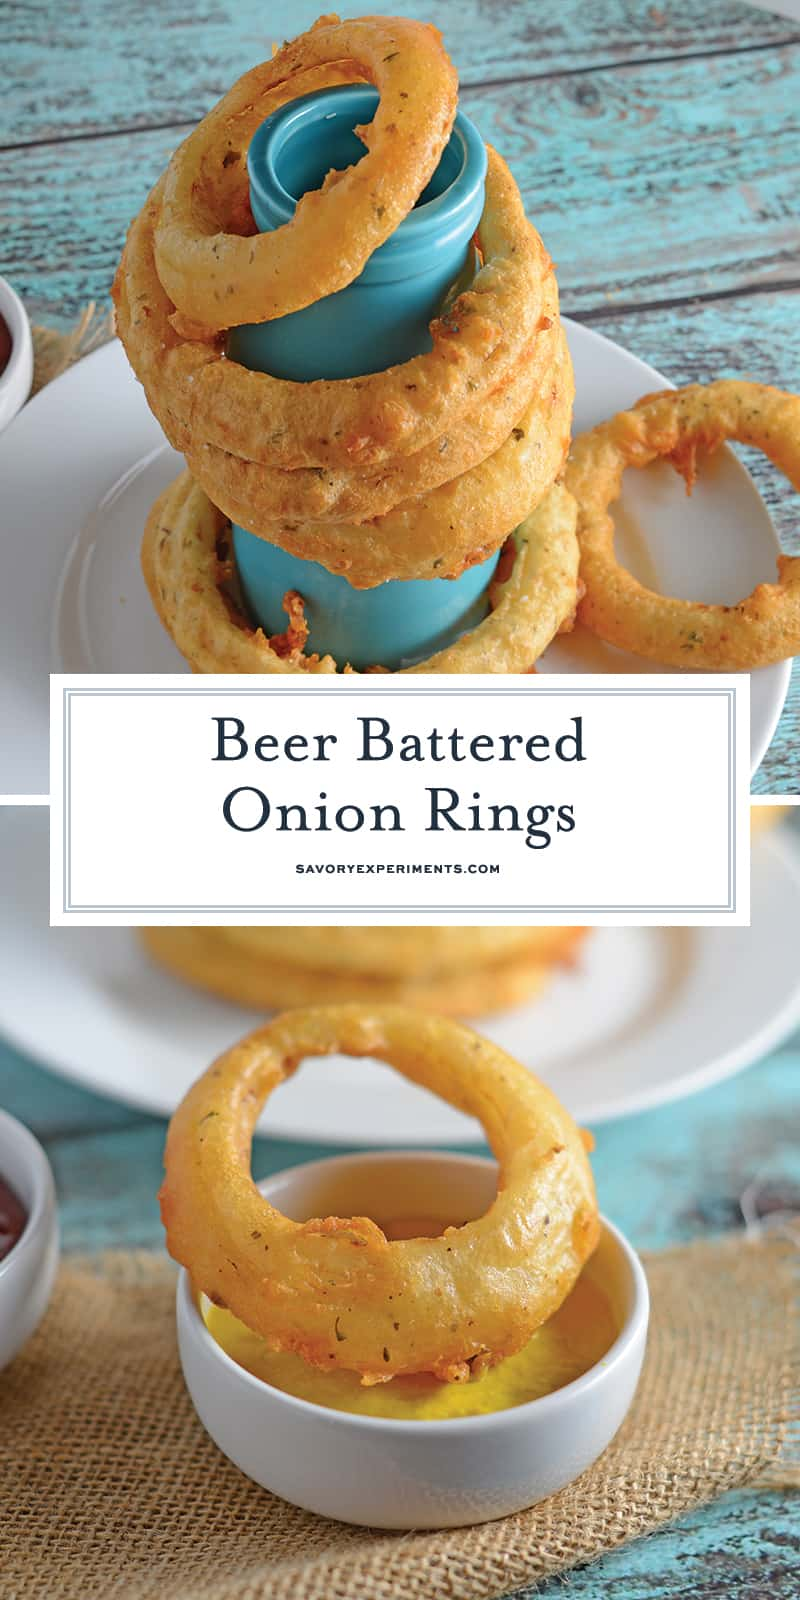 Beer Battered Onion Rings A Homemade Onion Rings Recipe